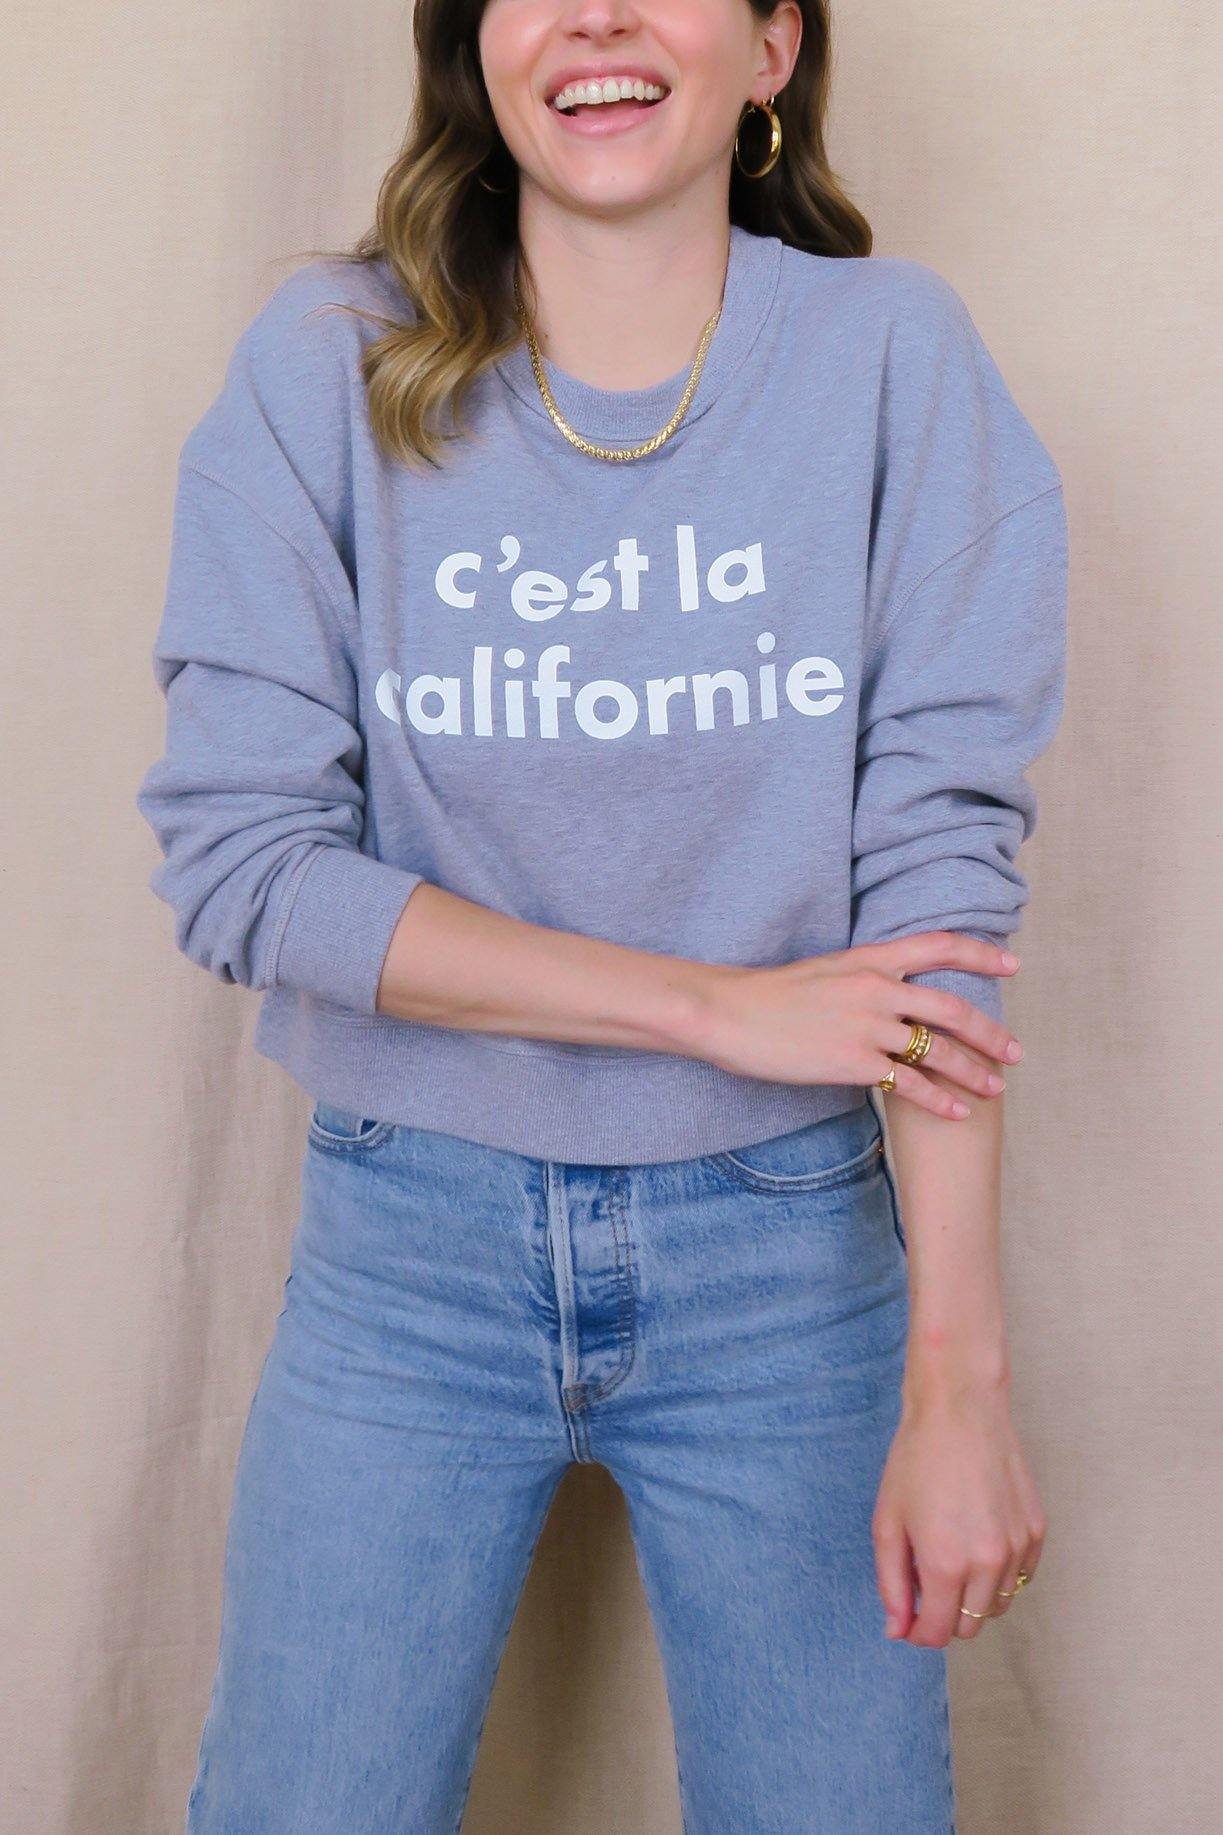 C'est La Californie Graphic Sweatshirt from Sweet & Spark.